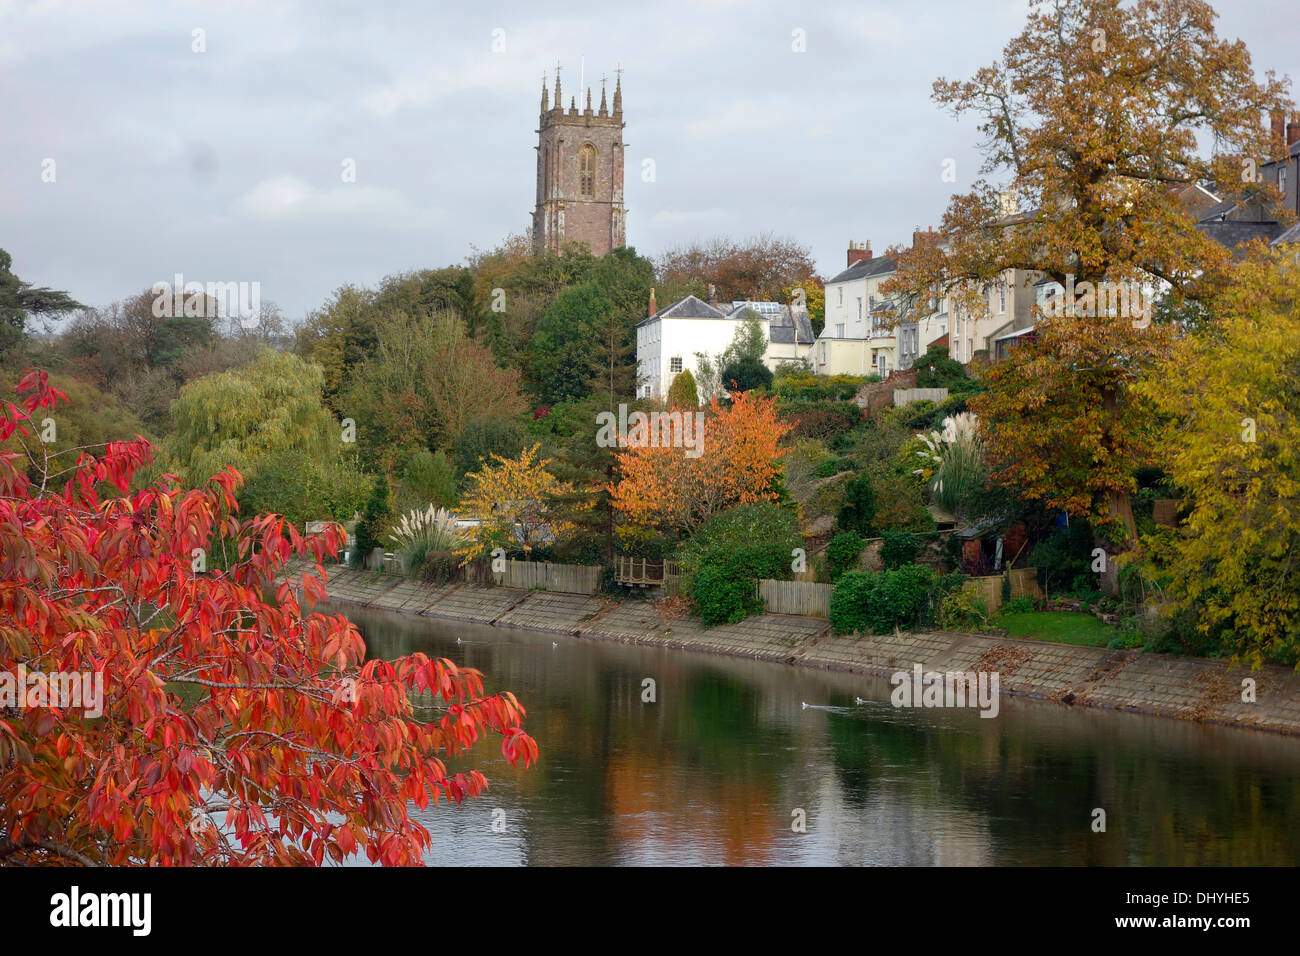 Autumn colour on the River Exe, Tiverton, Devon with St Peter's Church tower - Stock Image